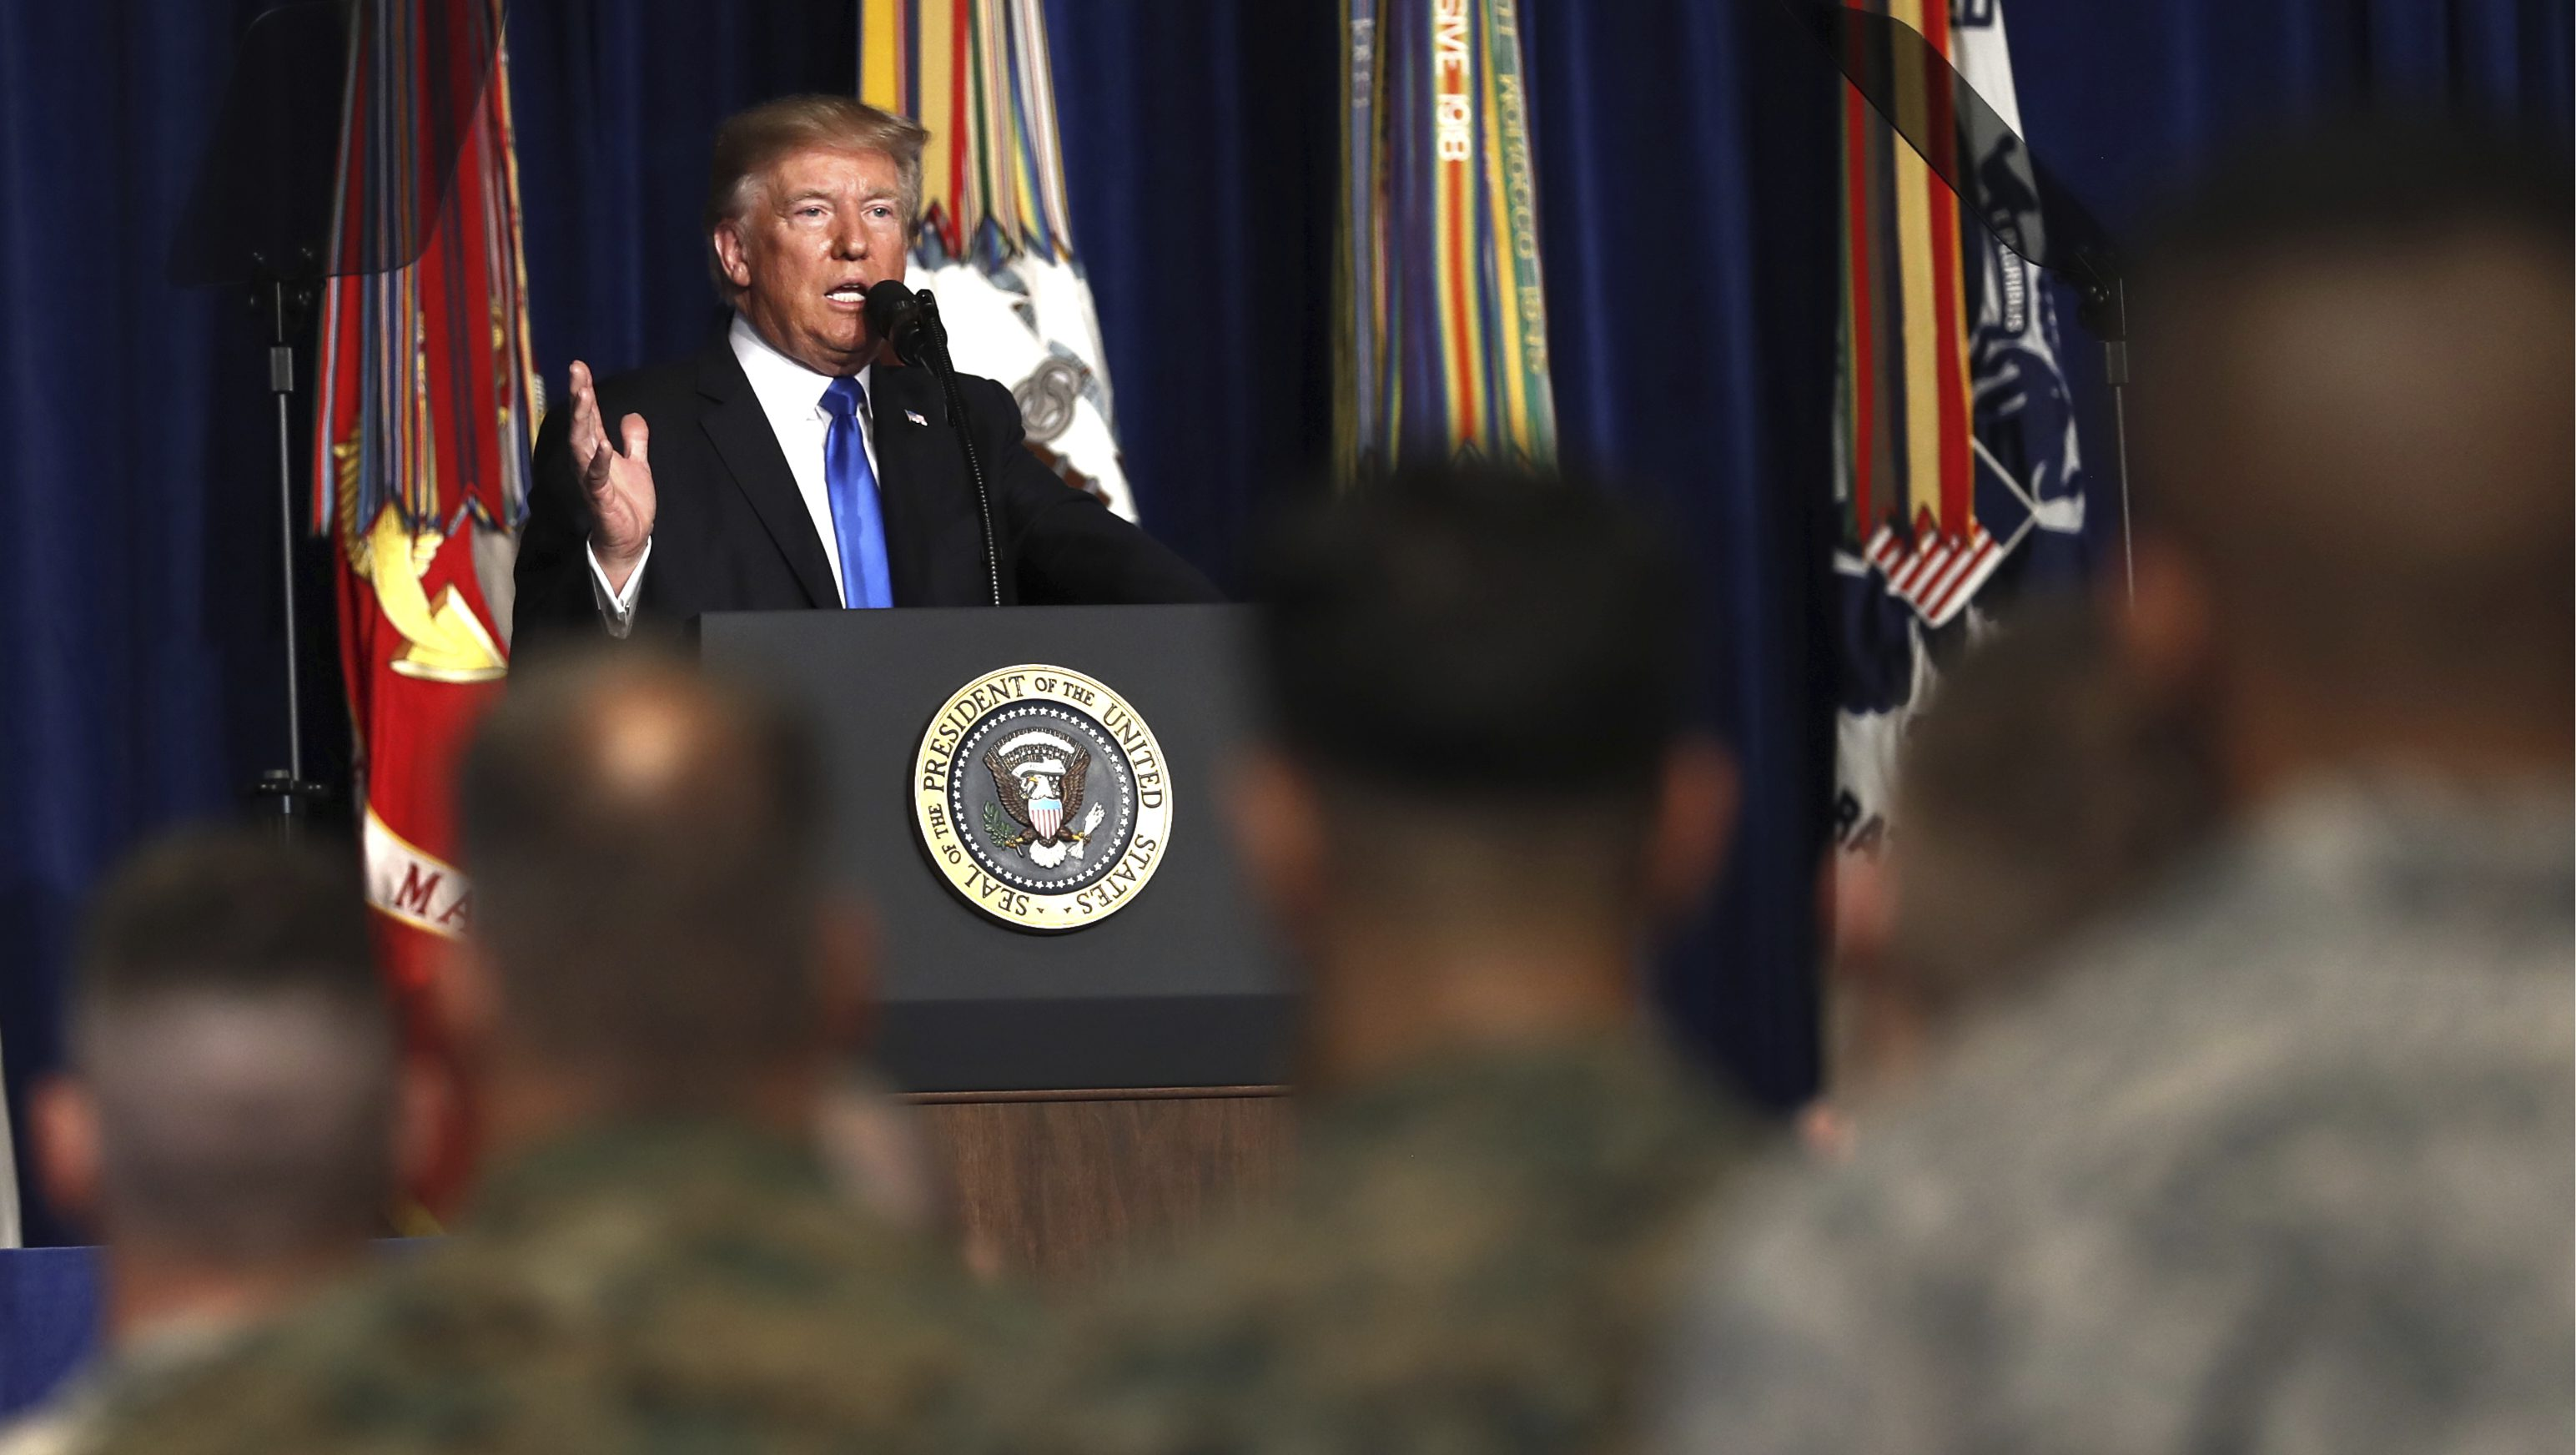 Donald Trump speaks at Fort Myer in Arlington Va., Monday, Aug. 21, 2017.